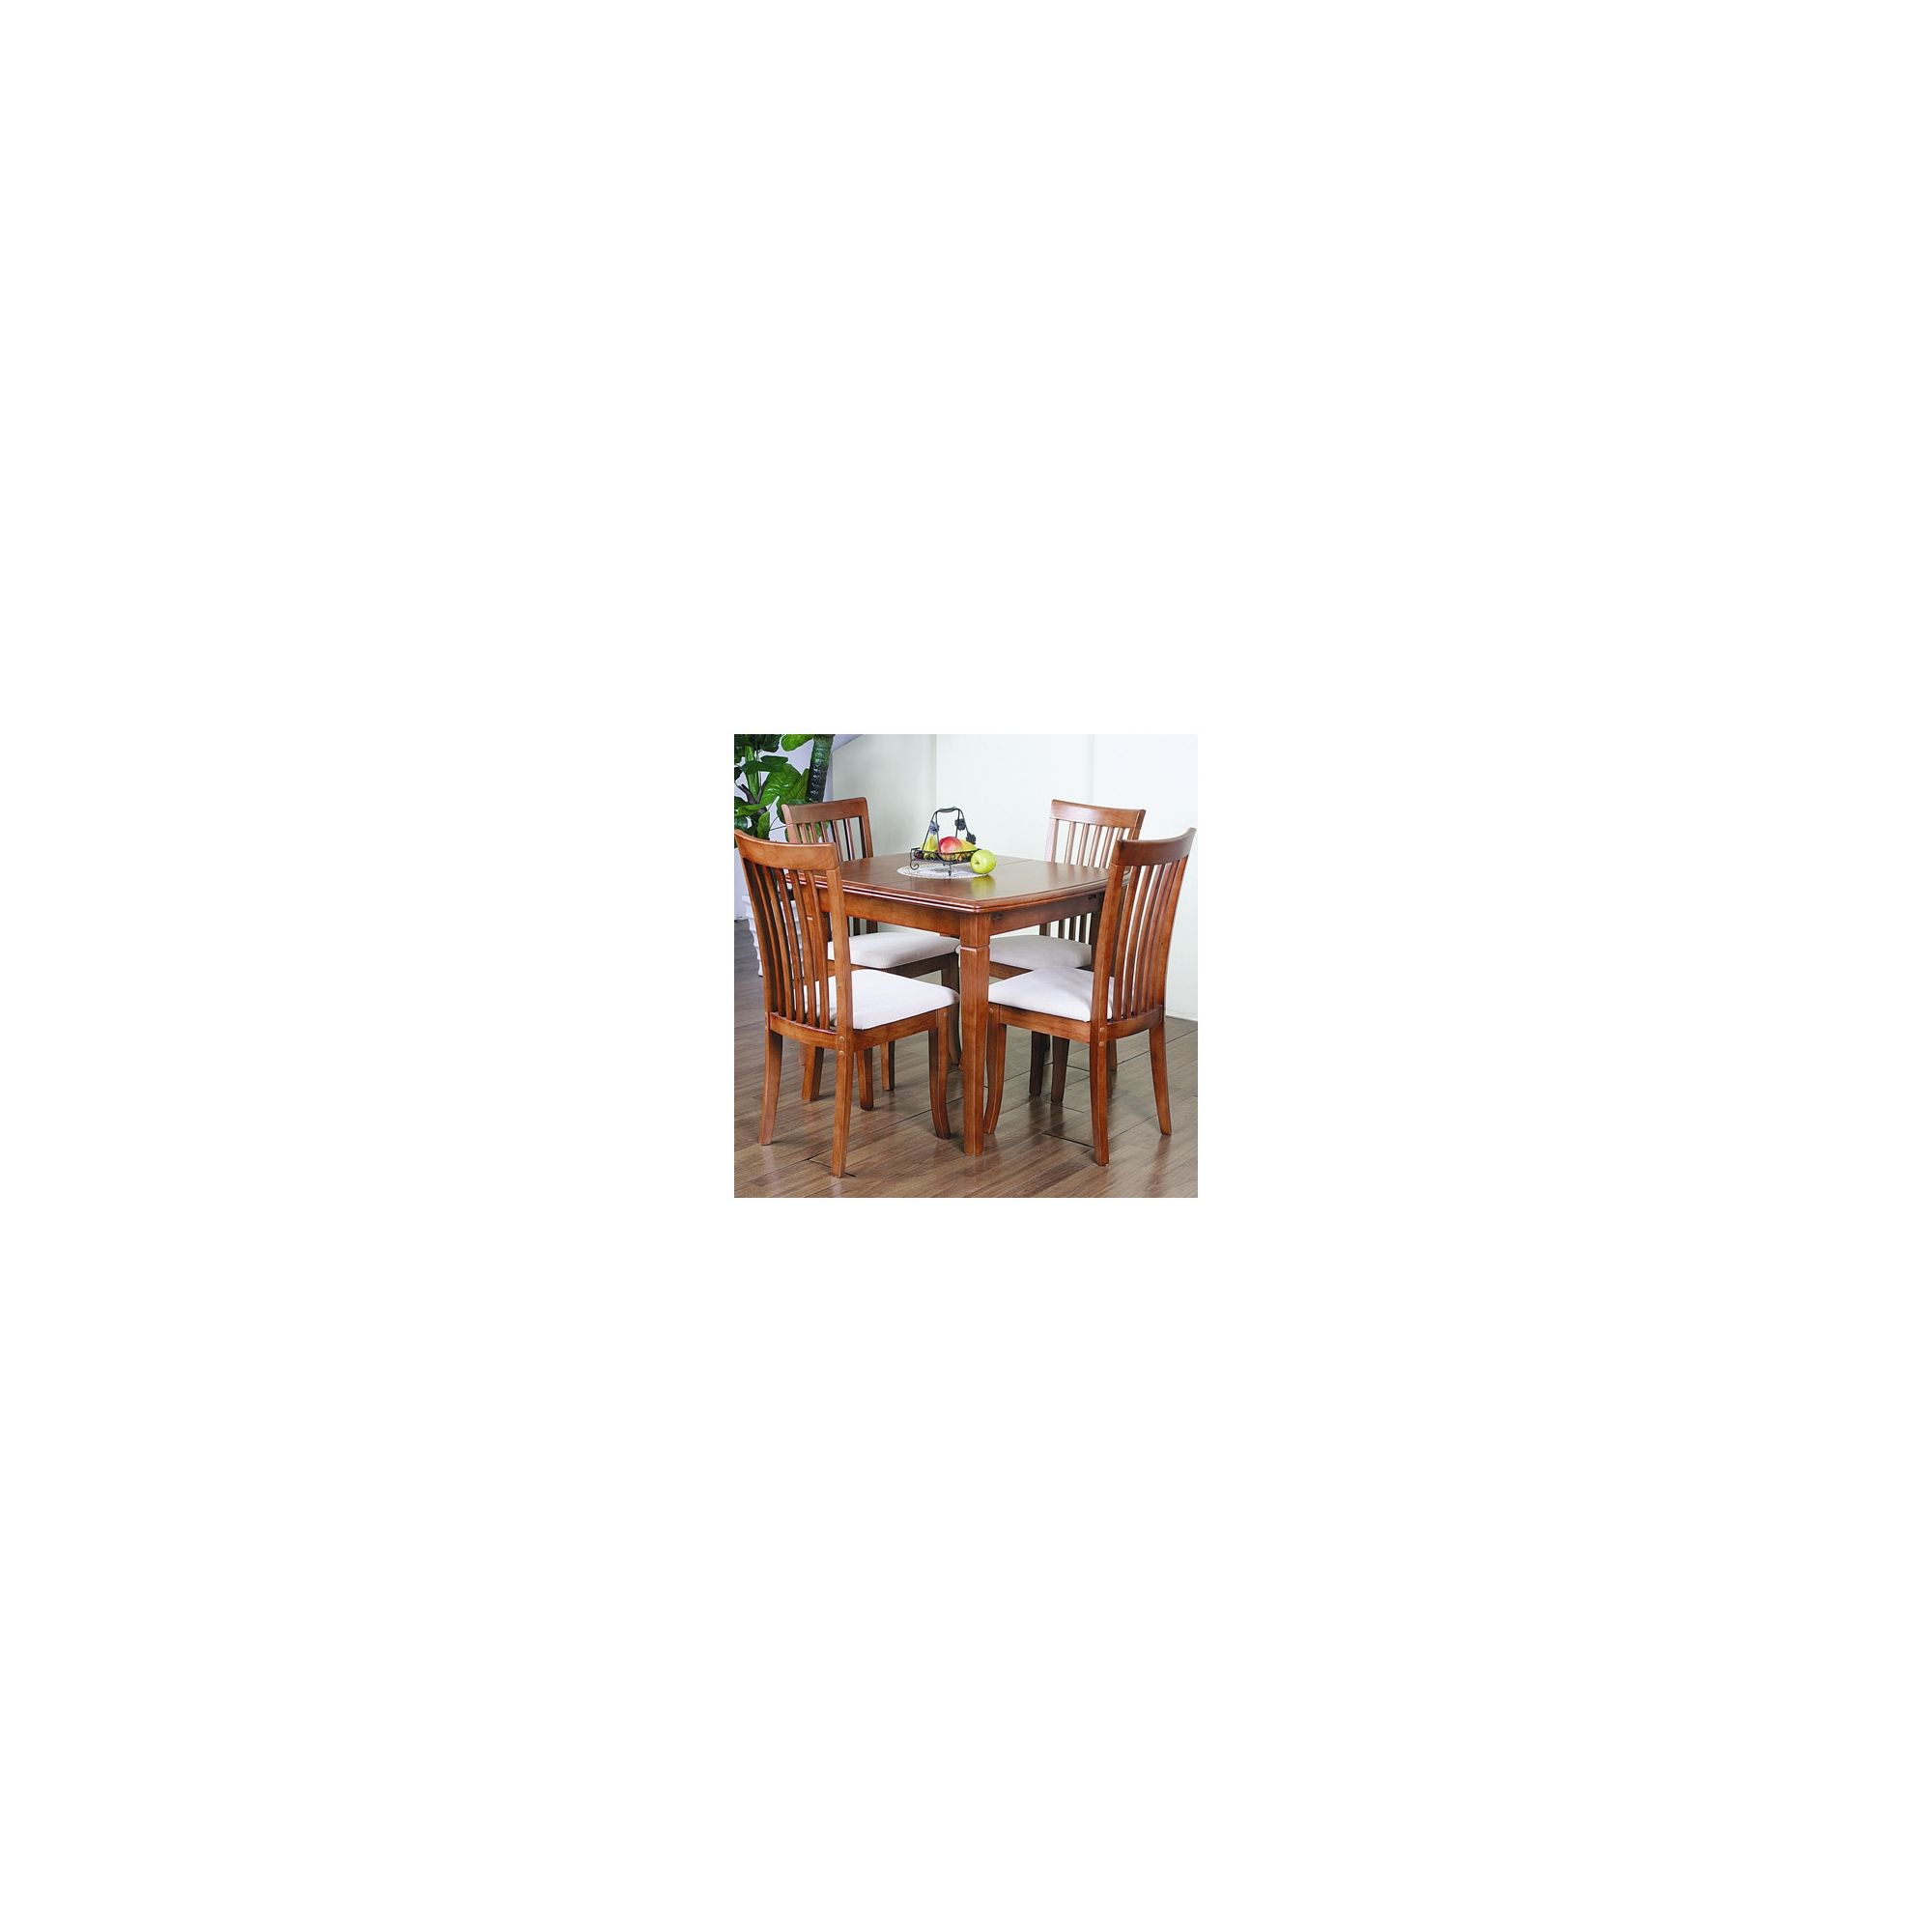 G&P Furniture Windsor House 5-Piece Lincoln Extending Dining Set - Cherry at Tesco Direct